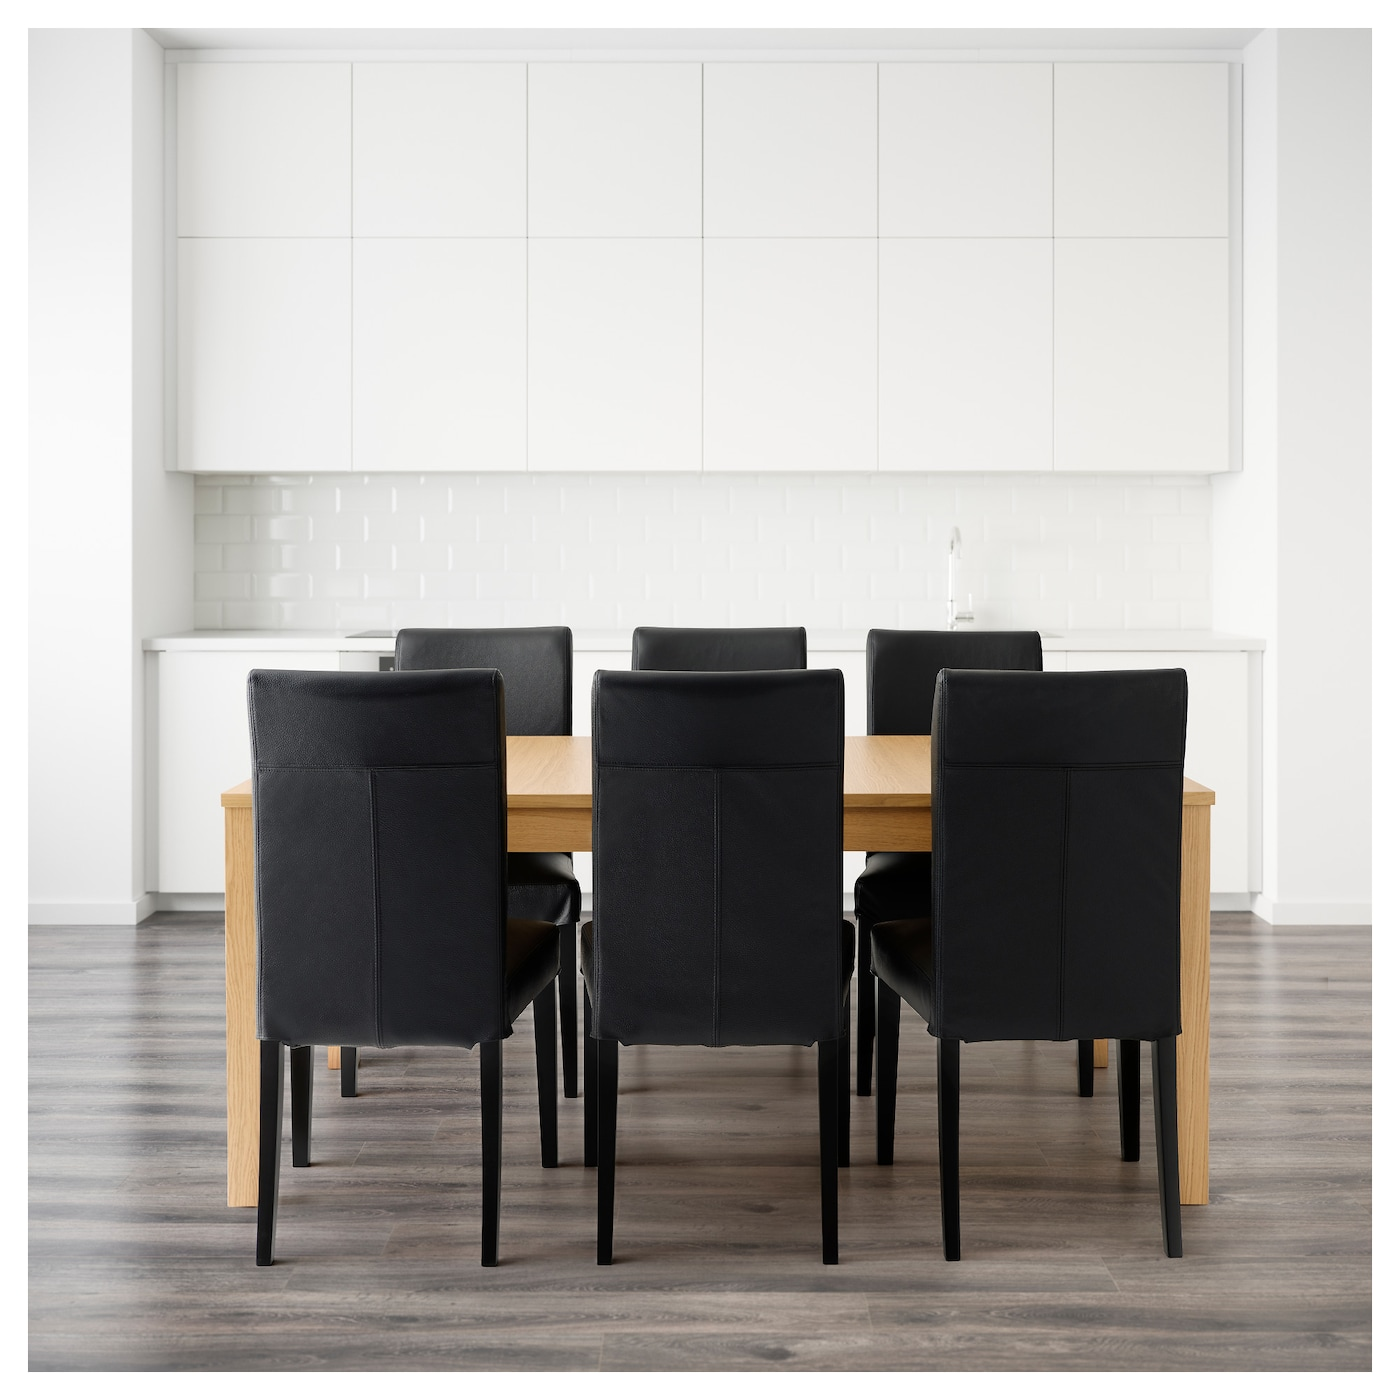 #876844  /BJURSTA Table And 6 Chairs Oak Veneer/glose Black 175 Cm IKEA with 2000x2000 px of Most Effective Ikea Oak Chairs 20002000 wallpaper @ avoidforclosure.info